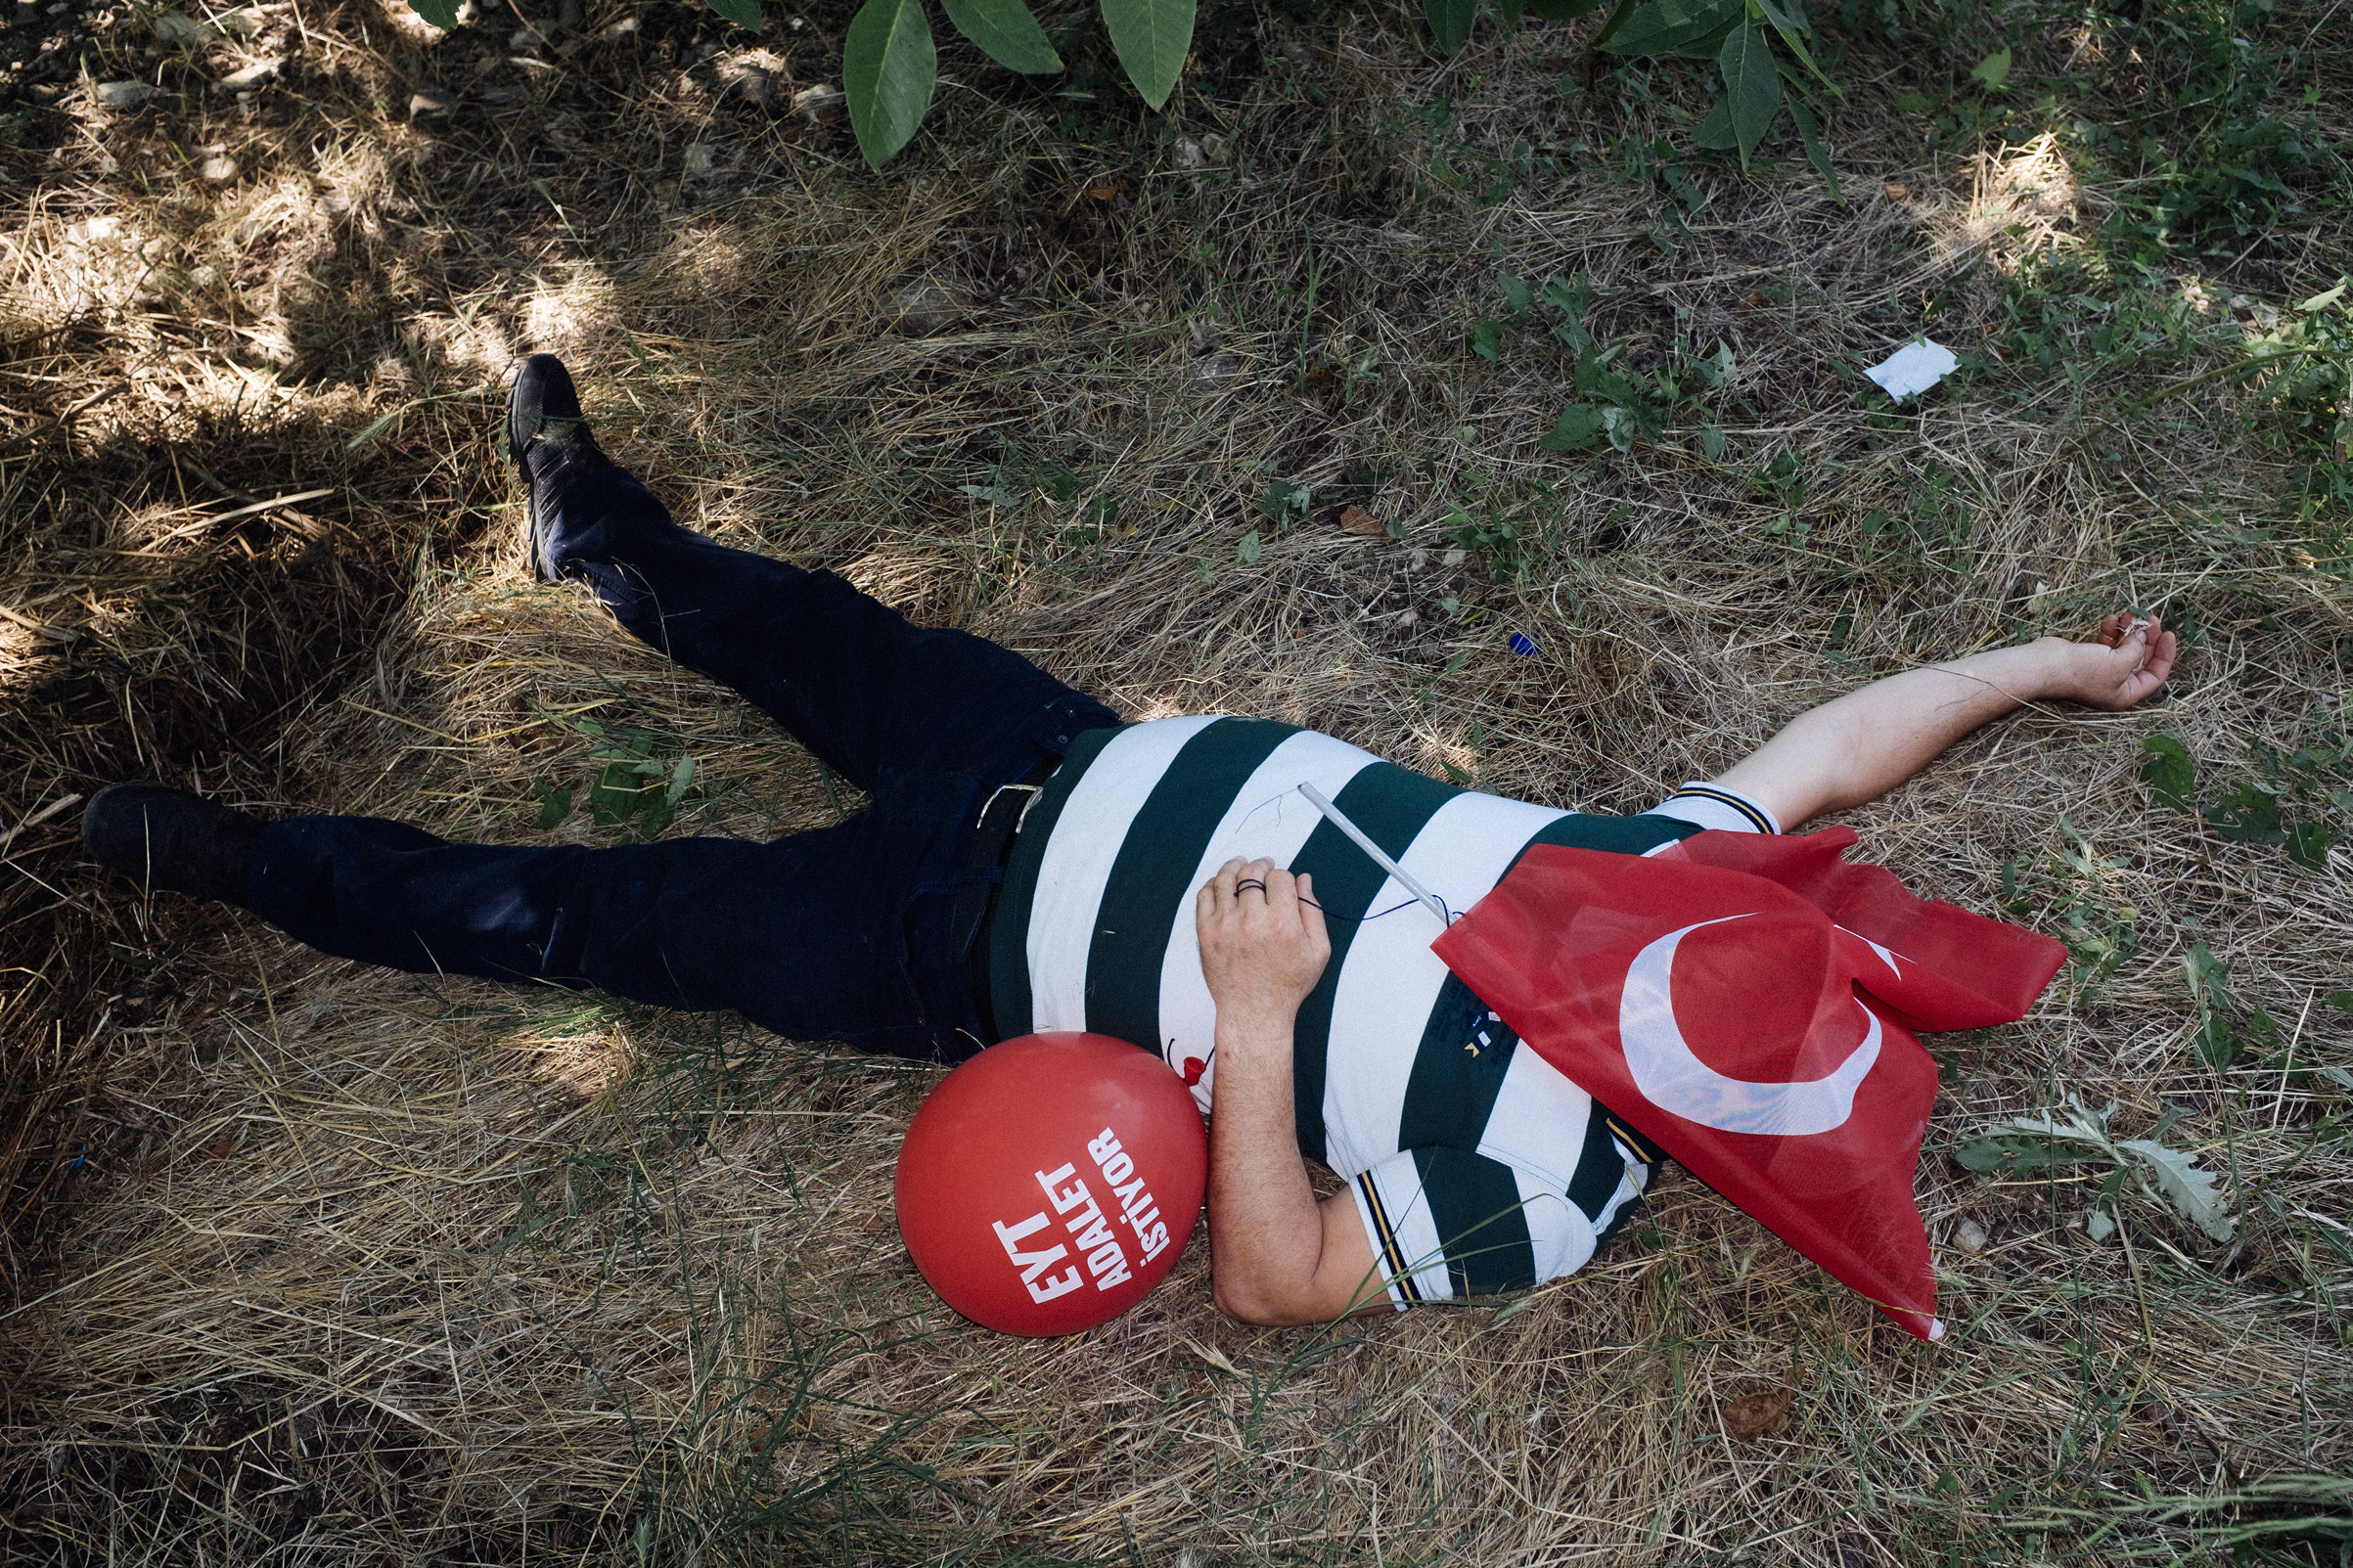 A man sleeps covering his face with a Turkish flag during a break in the Justice March, led by main opposition Republican People's Party (CHP) leader Kemal Kilicdaroglu, July 2, 2017.